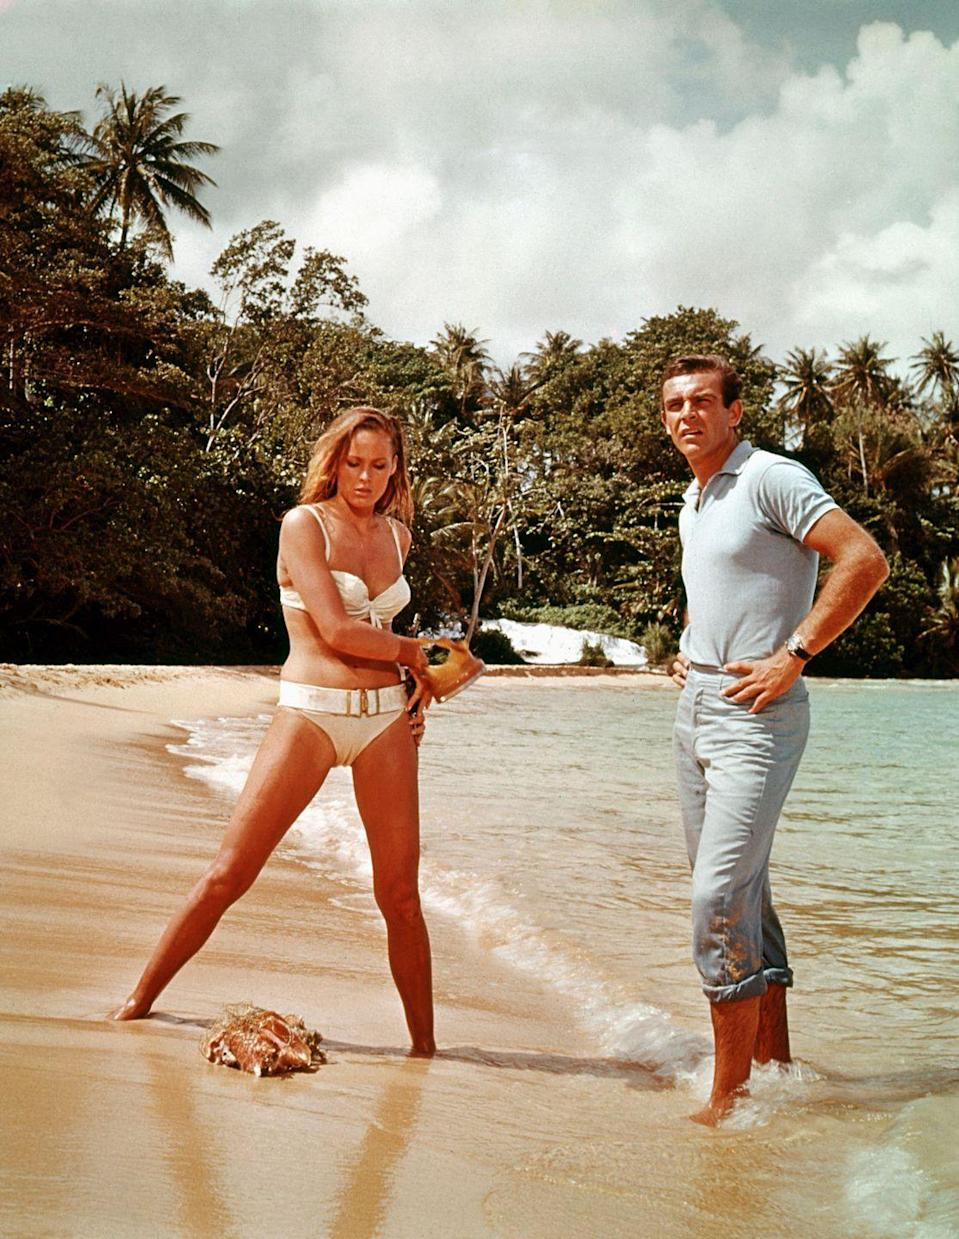 <p>Ursula Andress and Sean Connery on the shore in a scene from Dr. No.</p>